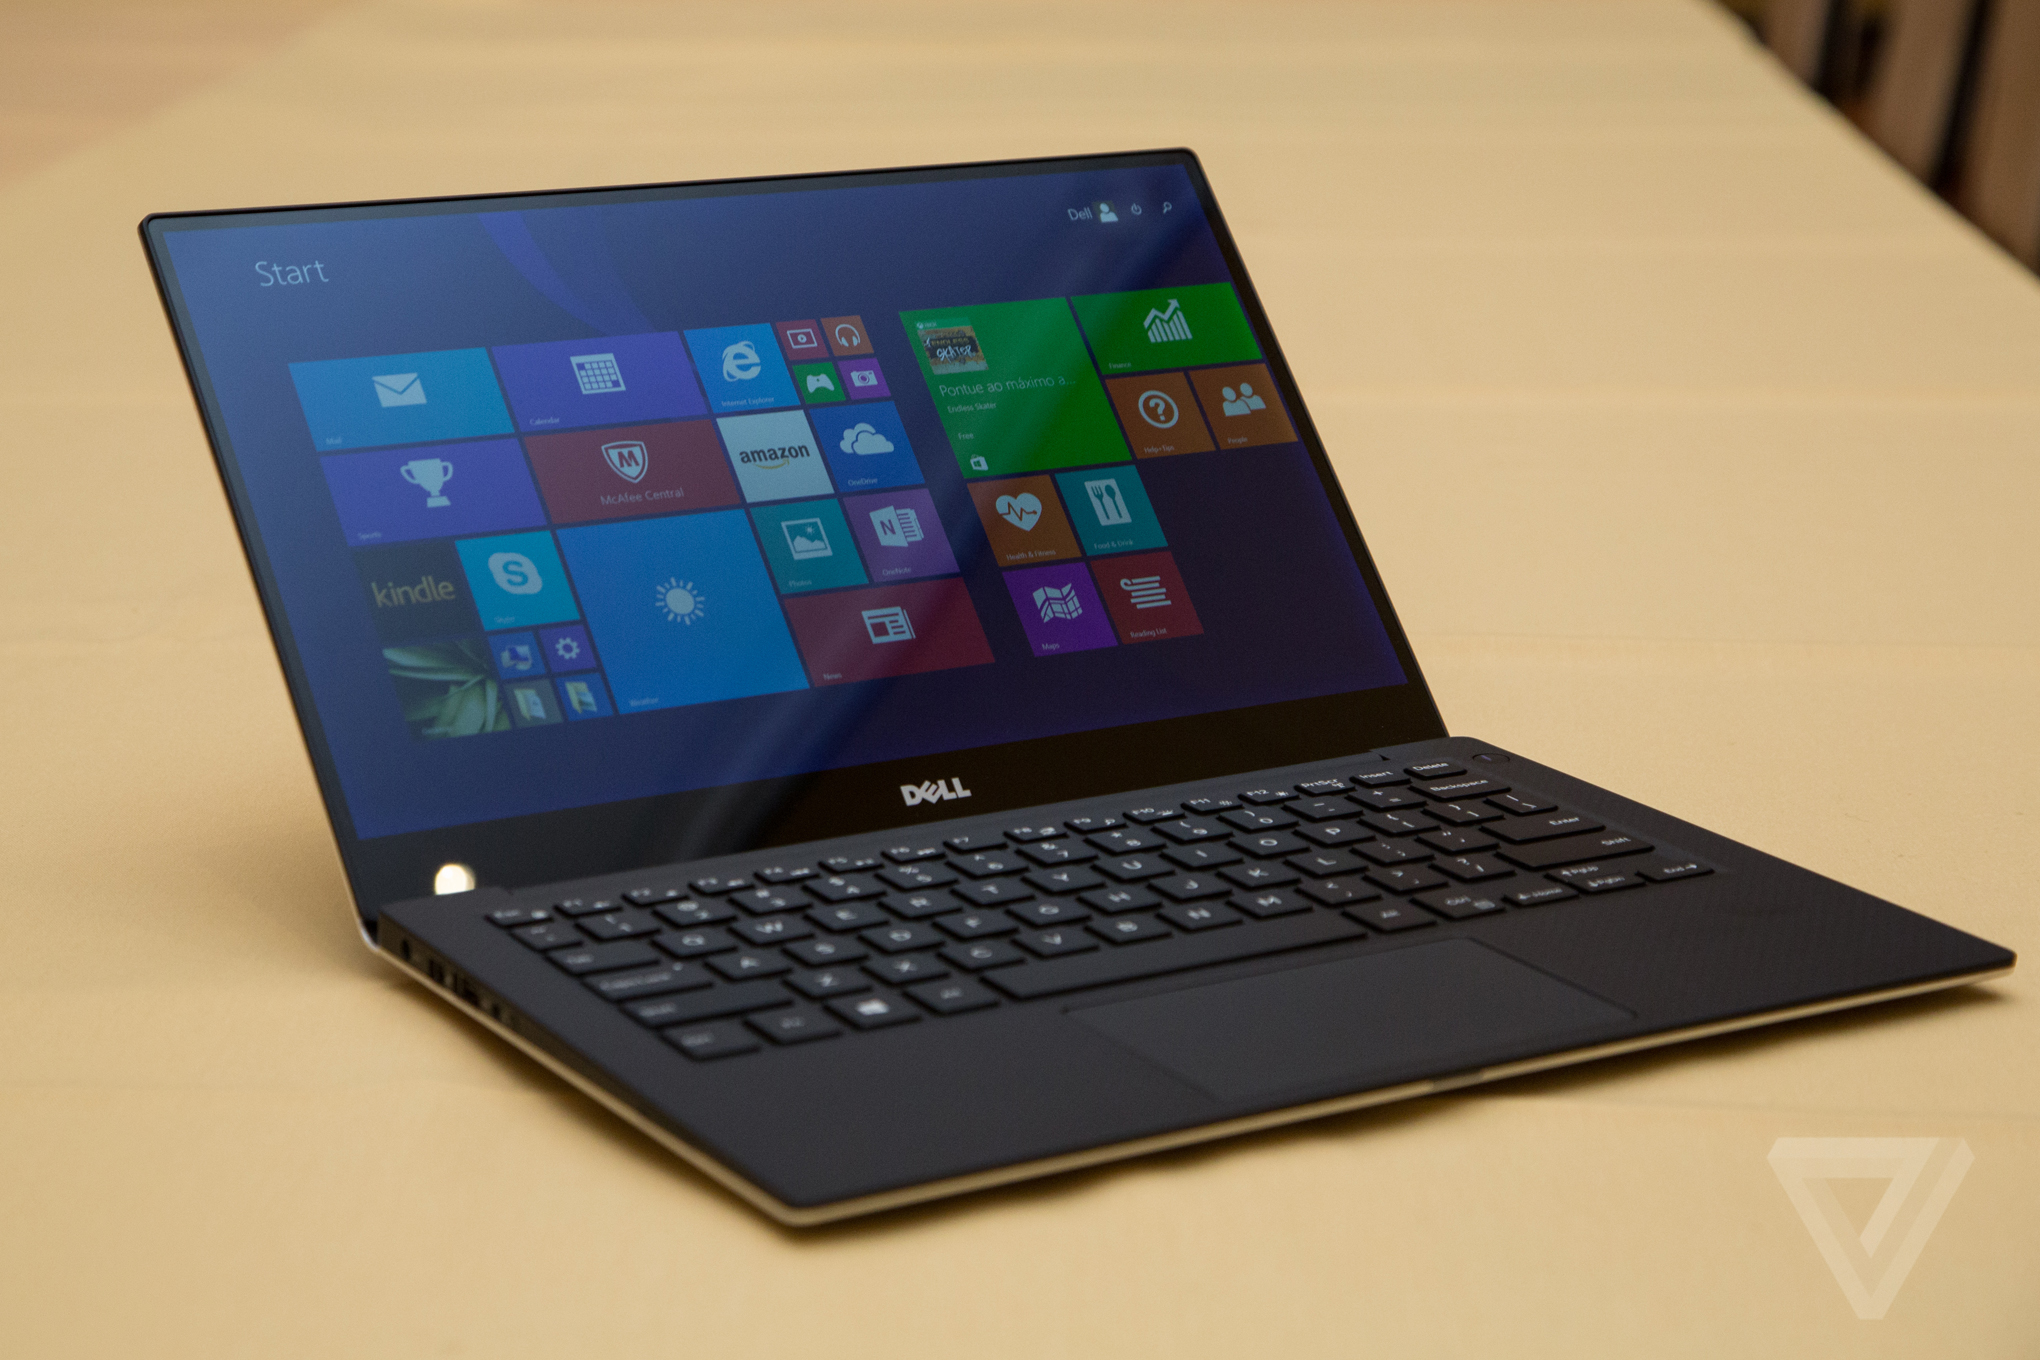 Dell's new XPS 13 has a stunning edge-to-edge display ...